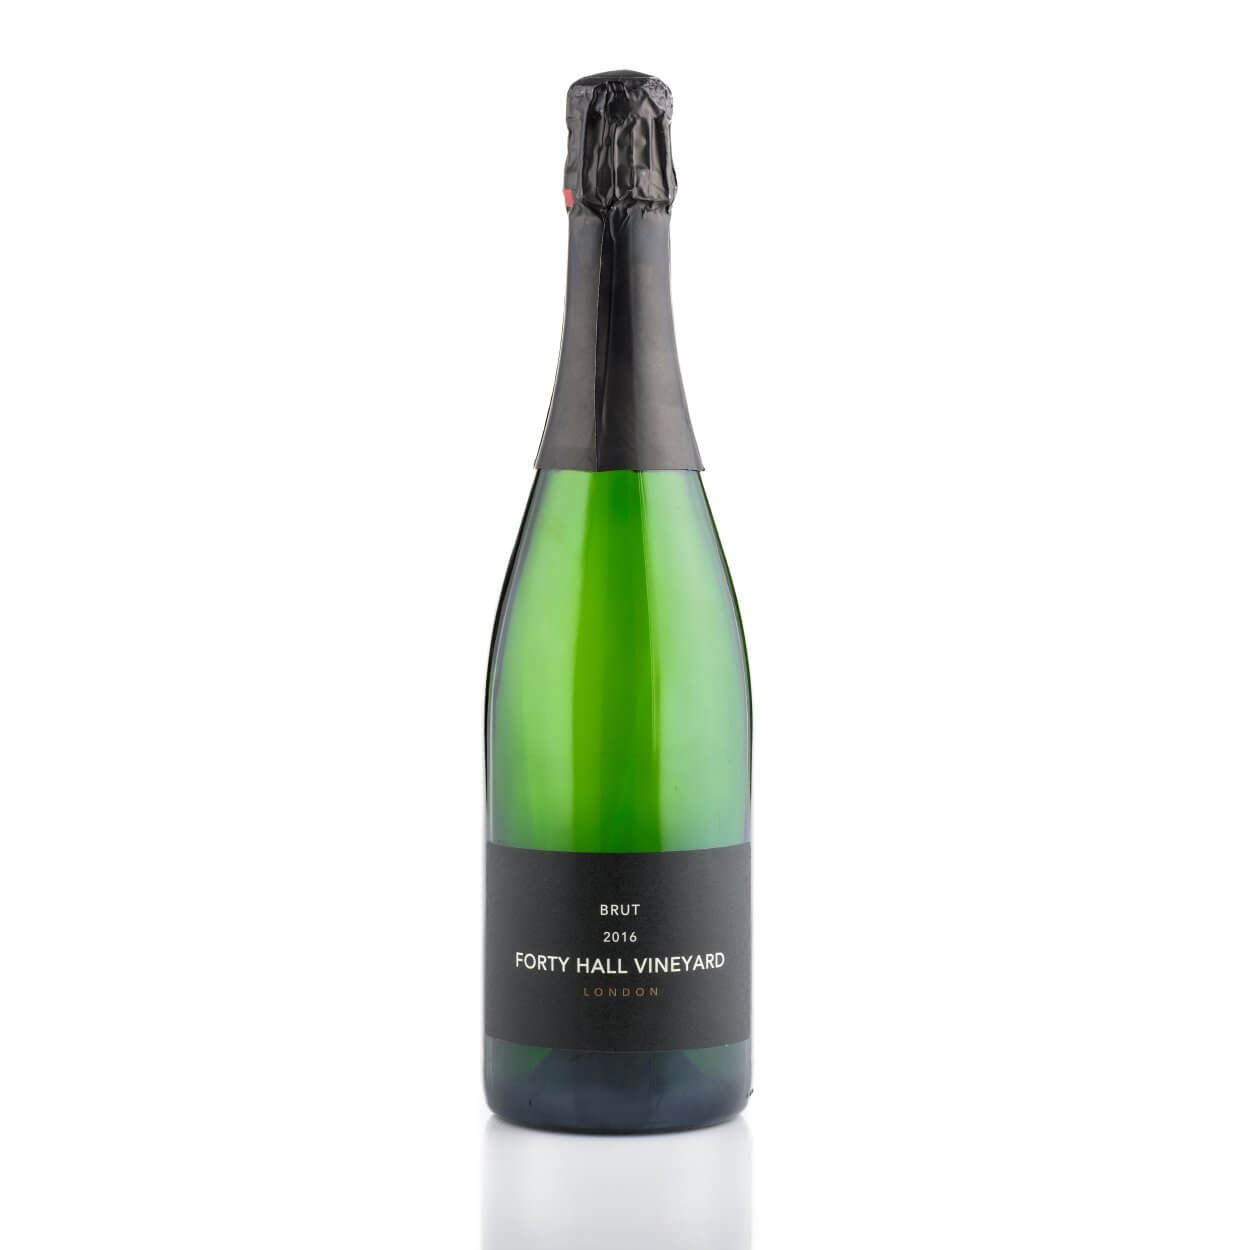 Forty Hall Vineyard Brut 2016 English Sparkling Wine